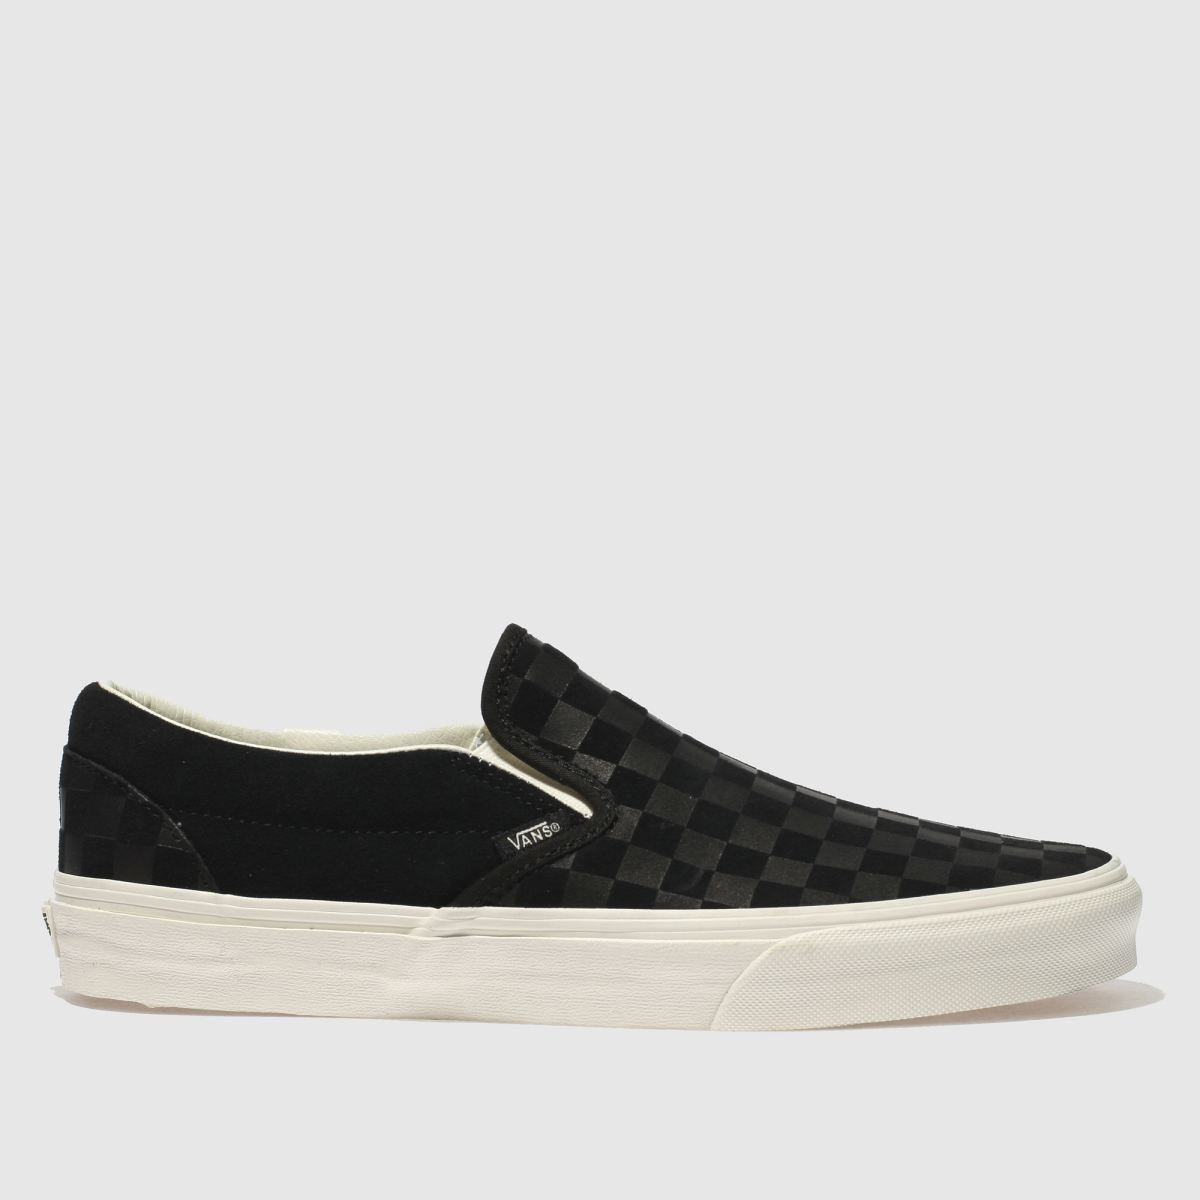 Vans Black Classic Slip-on Checker Trainers